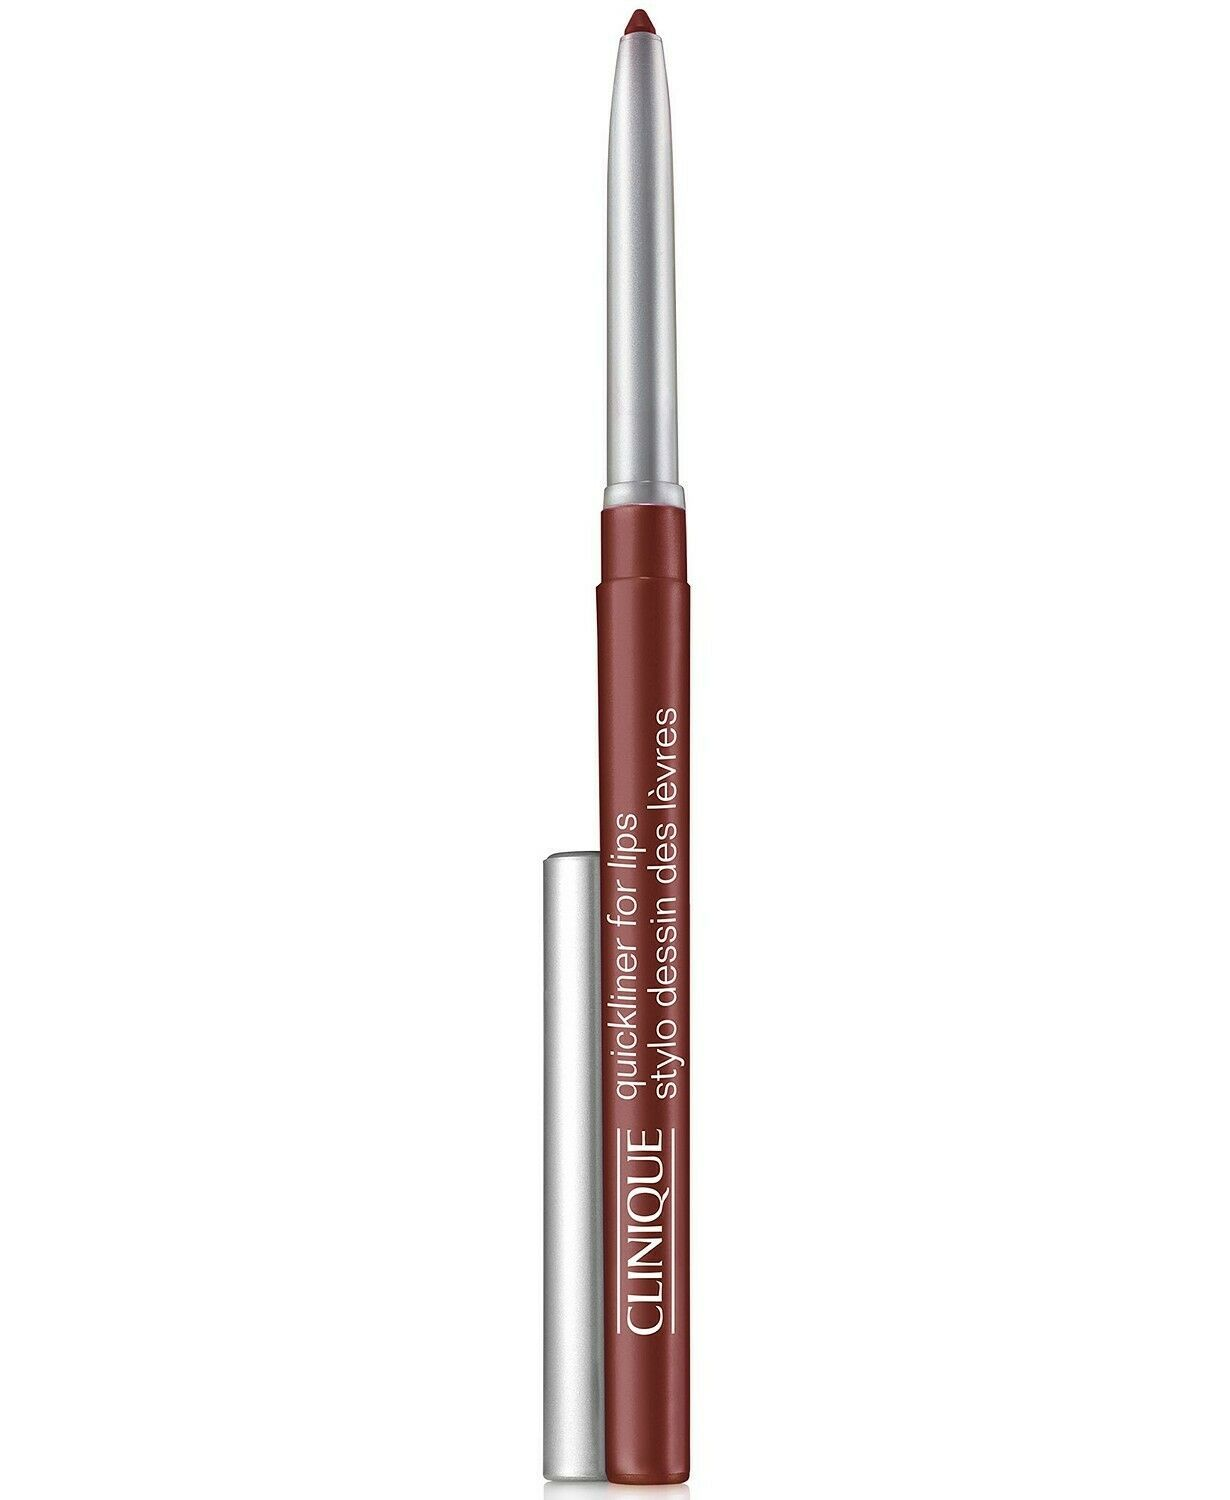 CLINIQUE Quickliner for Lips - 48 BING CHERRY -  NEW BOXED - $12.61